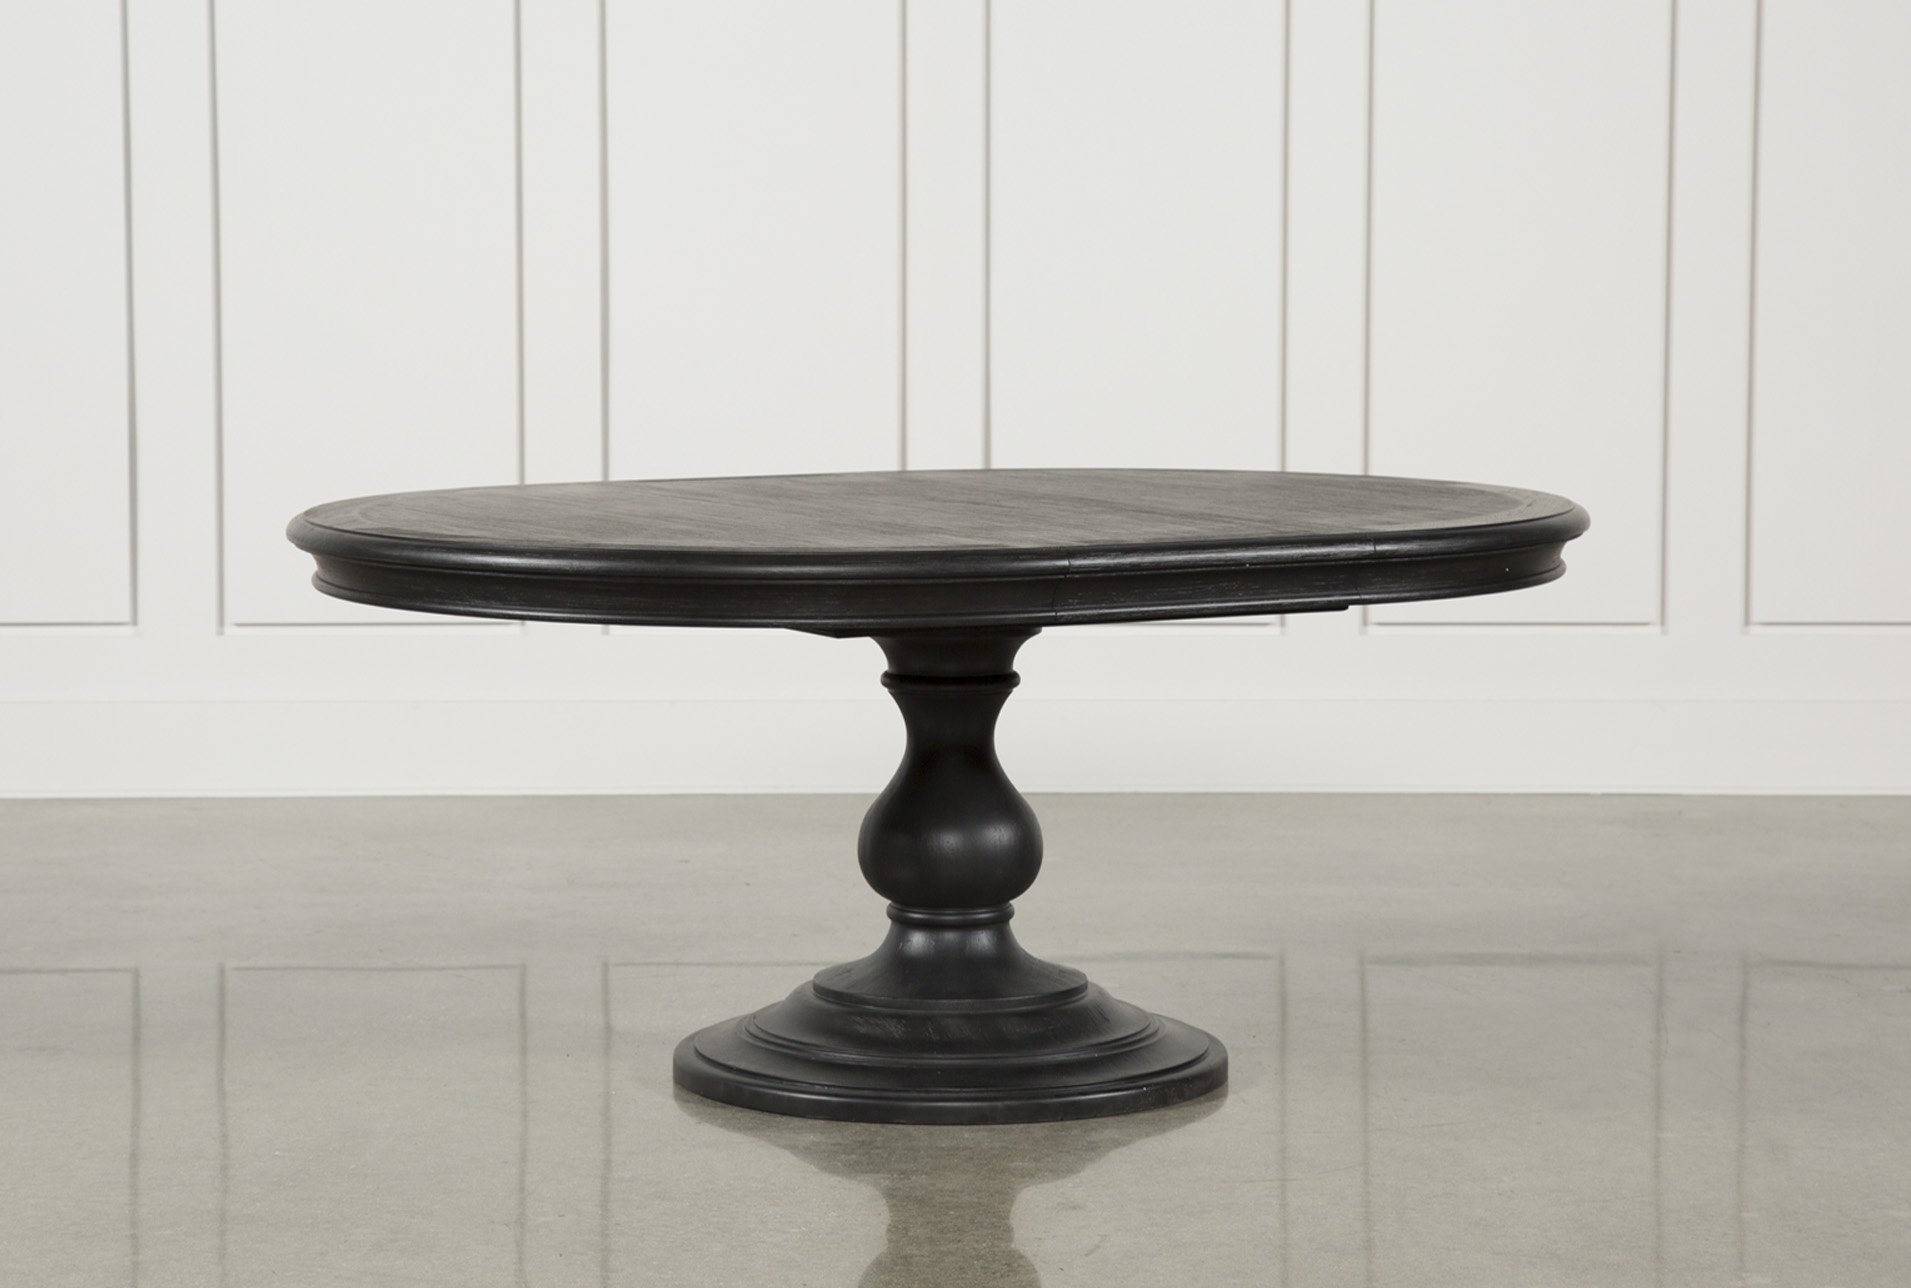 Genial Caira Black Round Dining Table (Qty: 1) Has Been Successfully Added To Your  Cart.